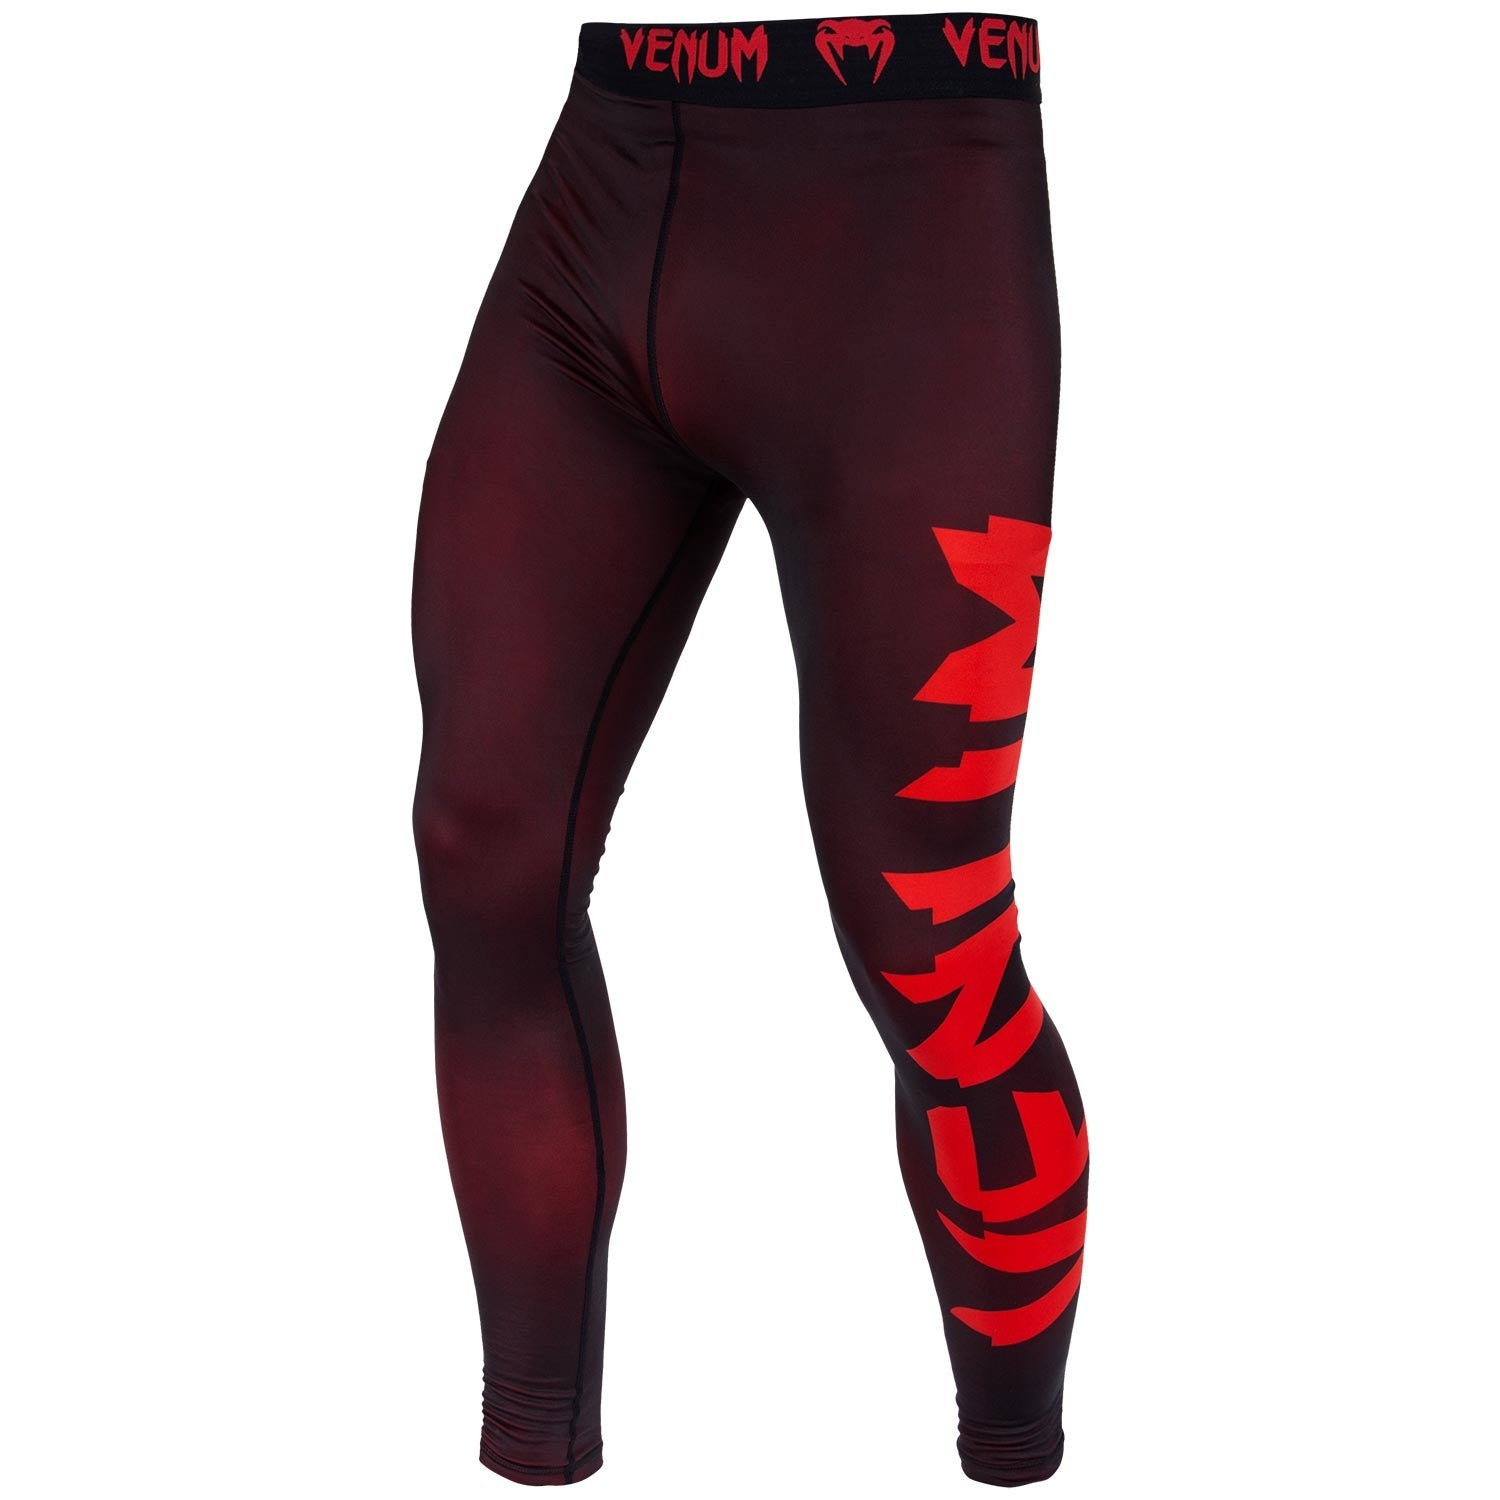 VENUM SPATS GIANT BLACK/RED - MSM FIGHT SHOP